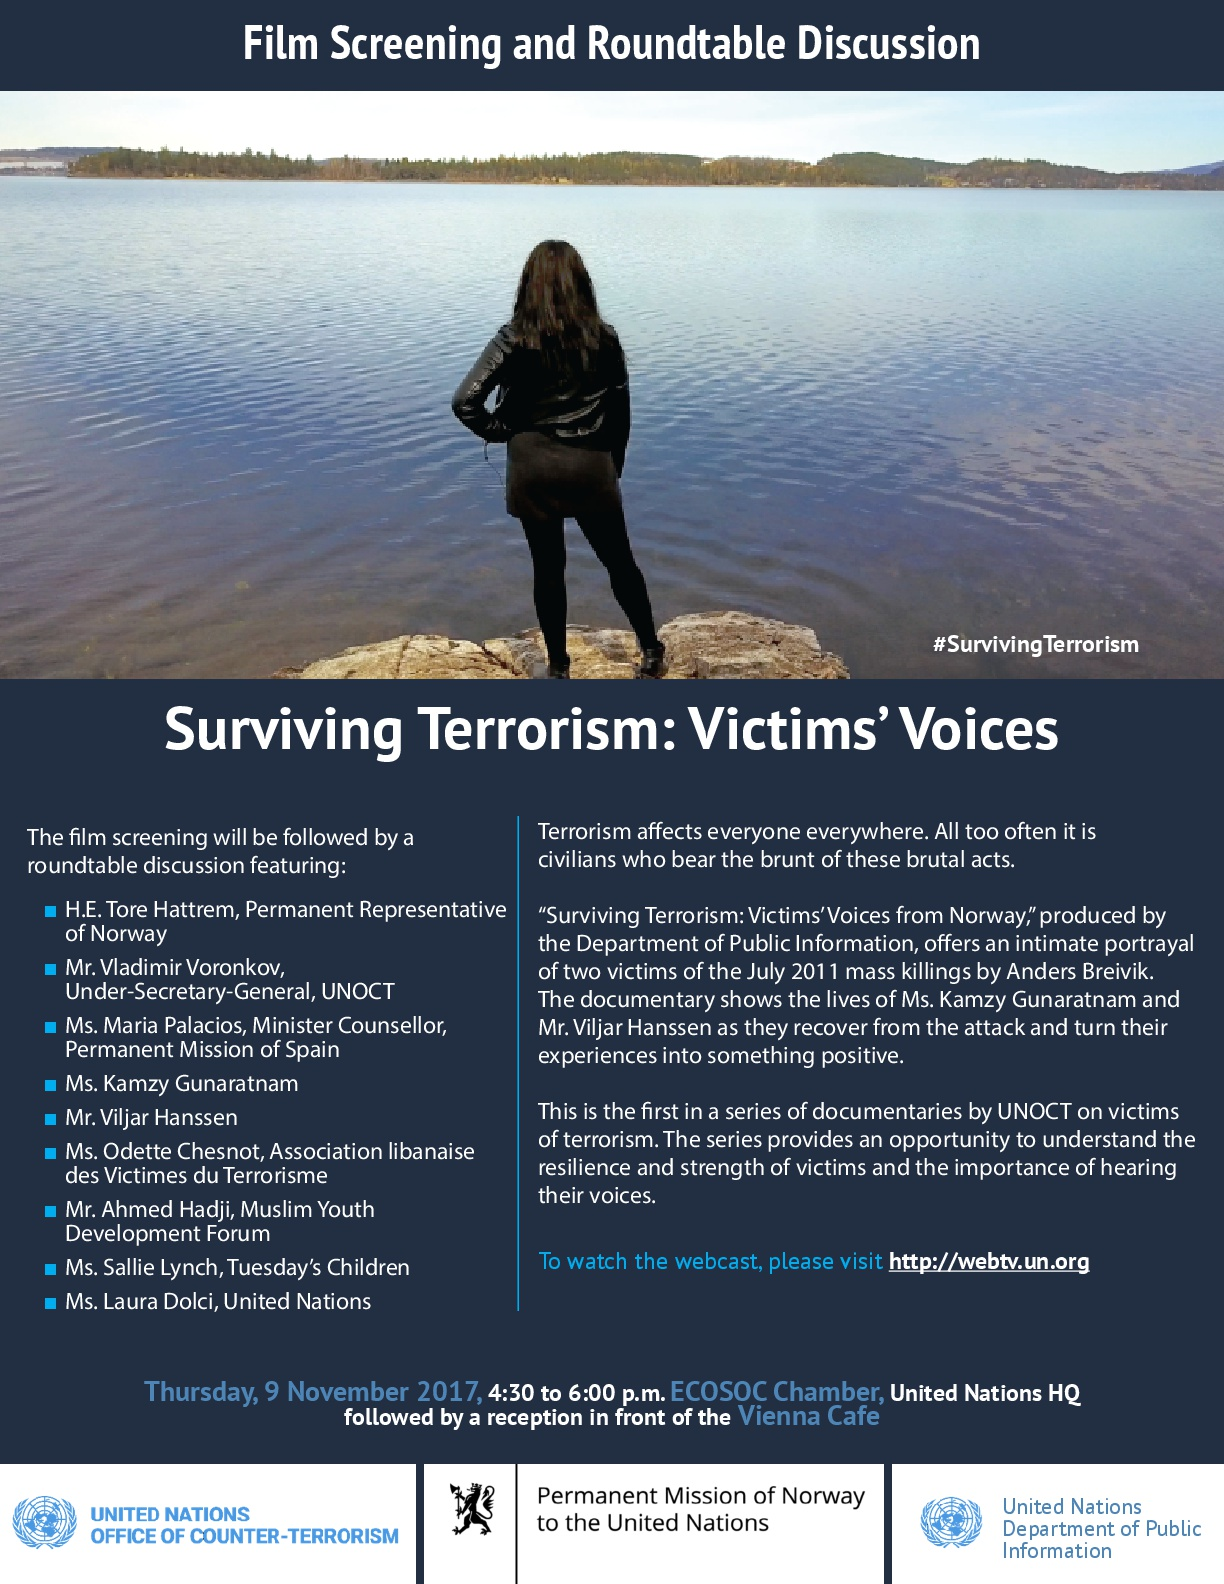 Surviving terrorism victims voices norway in the un the event aims to raise awareness on the importance of supporting victims during their recovery and will include the screening of a documentary that stopboris Images